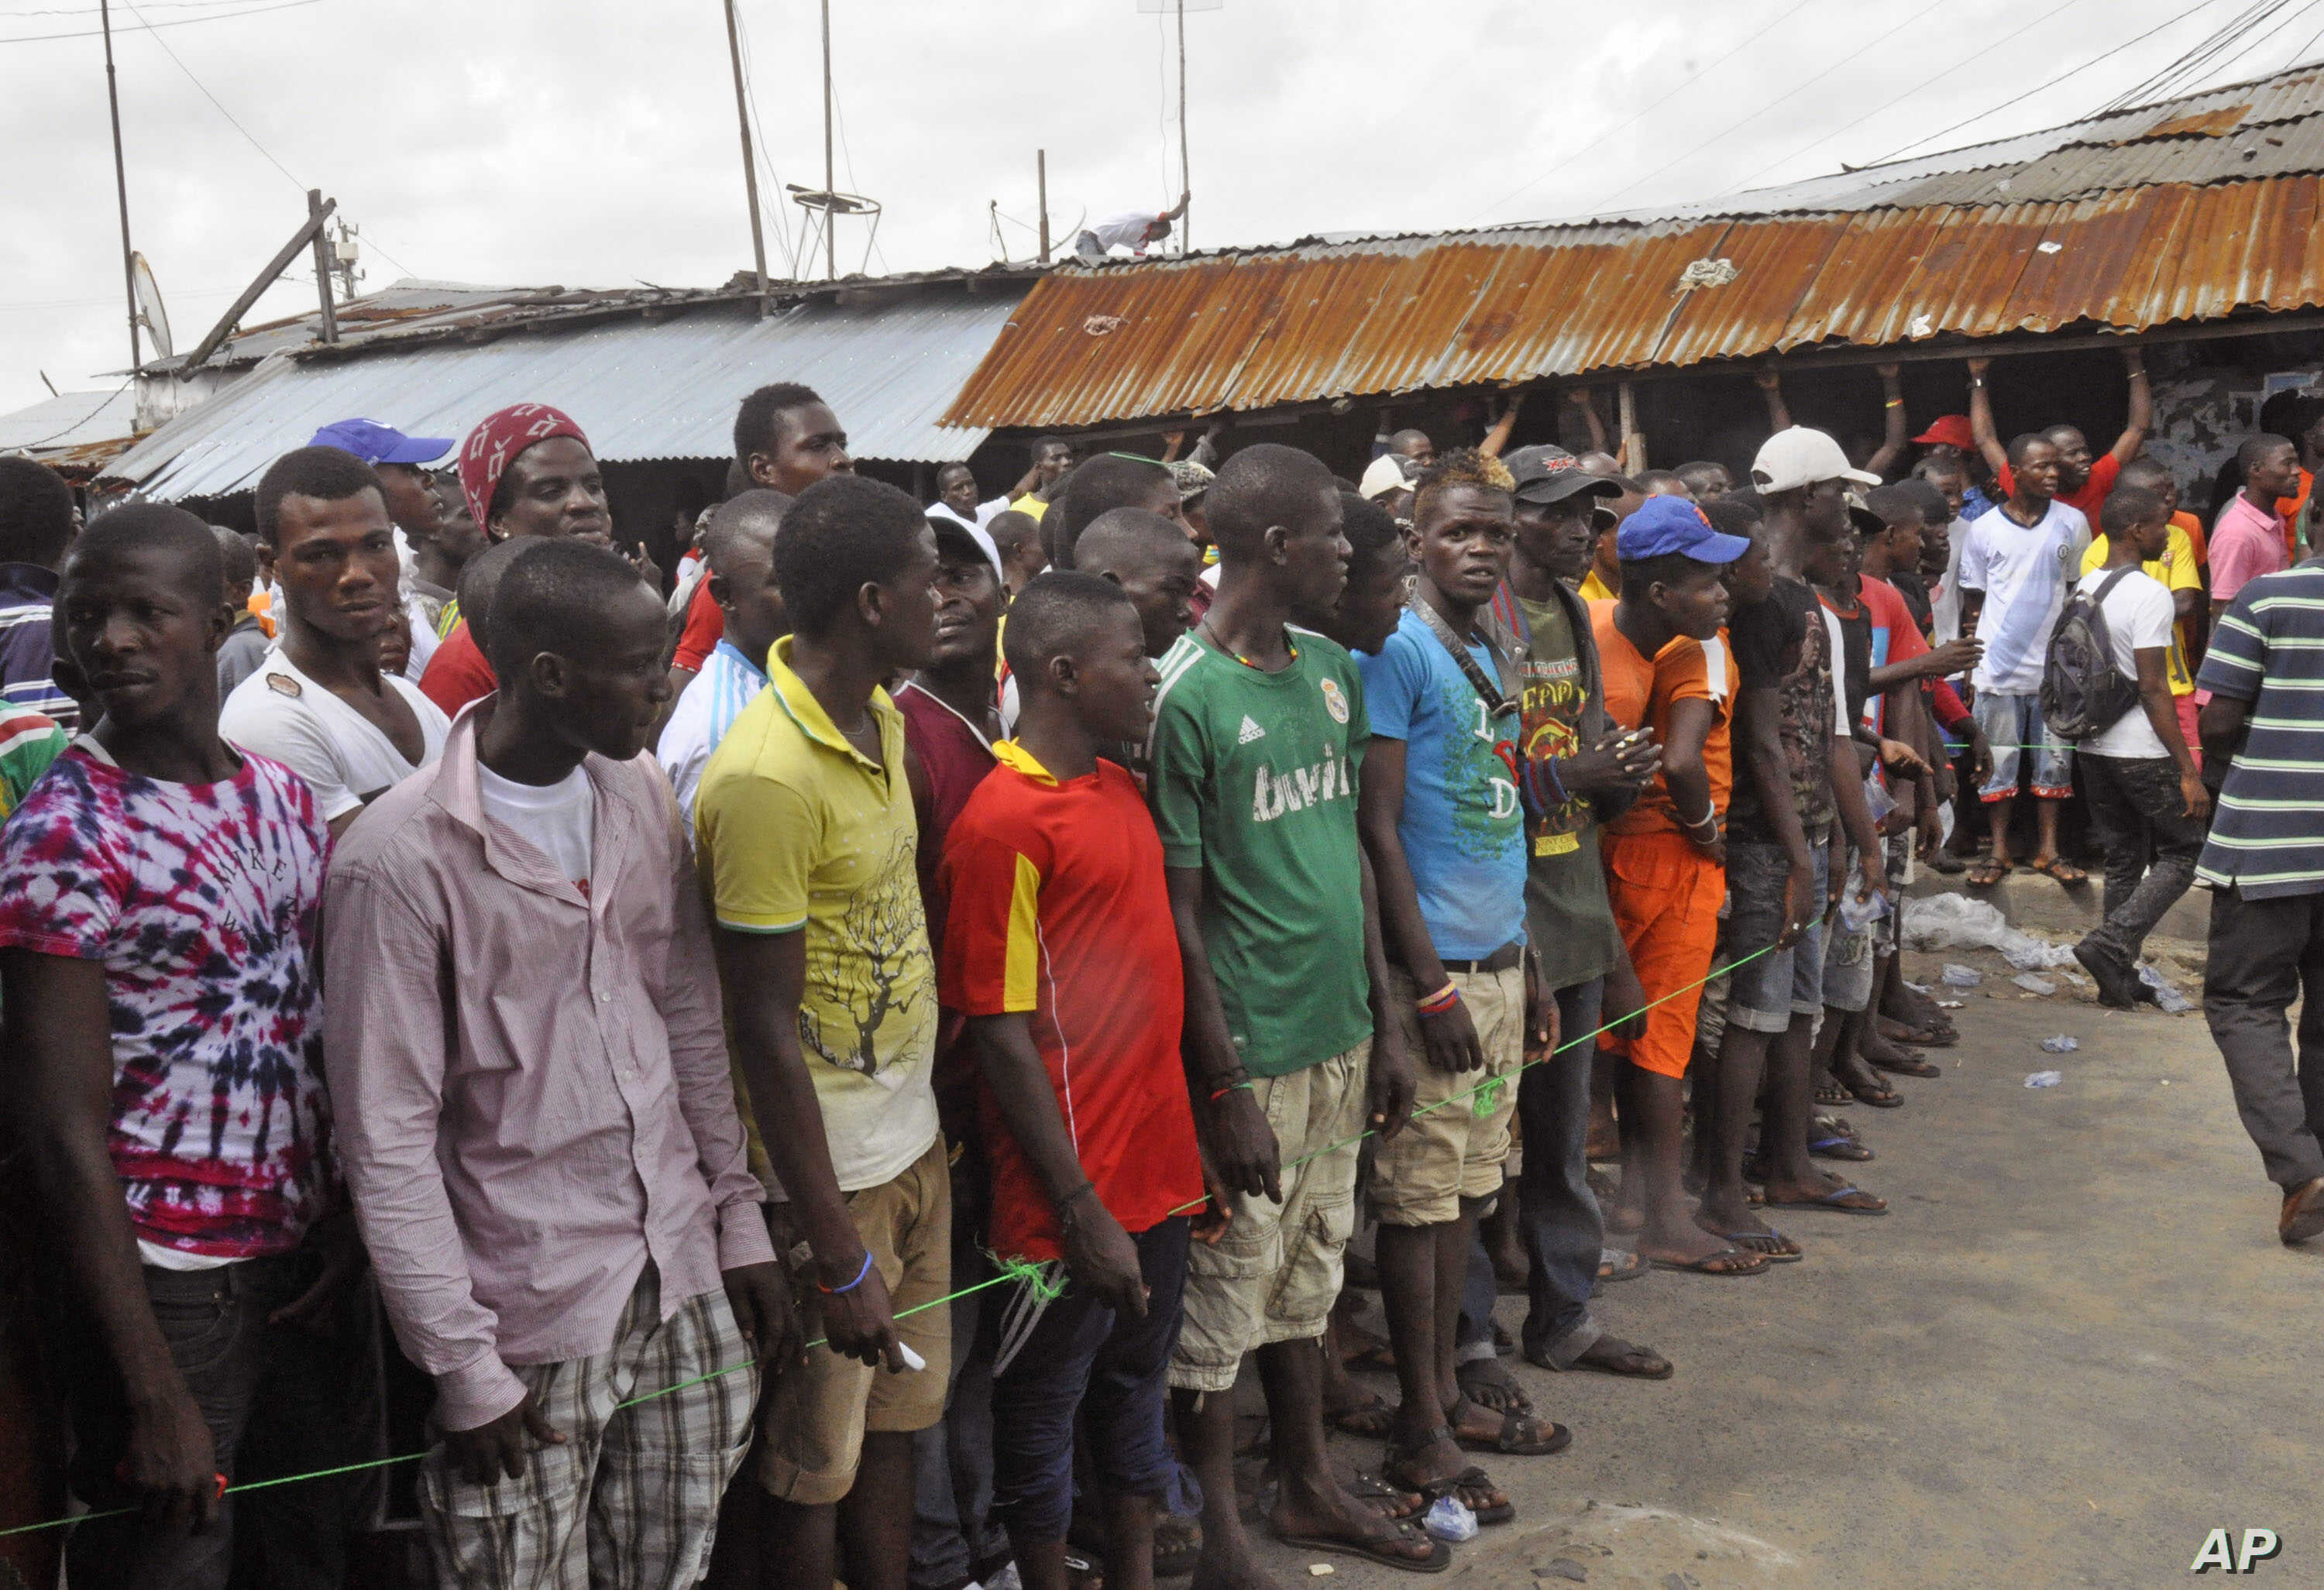 West Point residents stand behind a green string marking a holding area, as they wait for a second consignment of food from the Liberian Government to be handed out, at the West Point area, near the central city area of Monrovia, Liberia, Friday, Aug